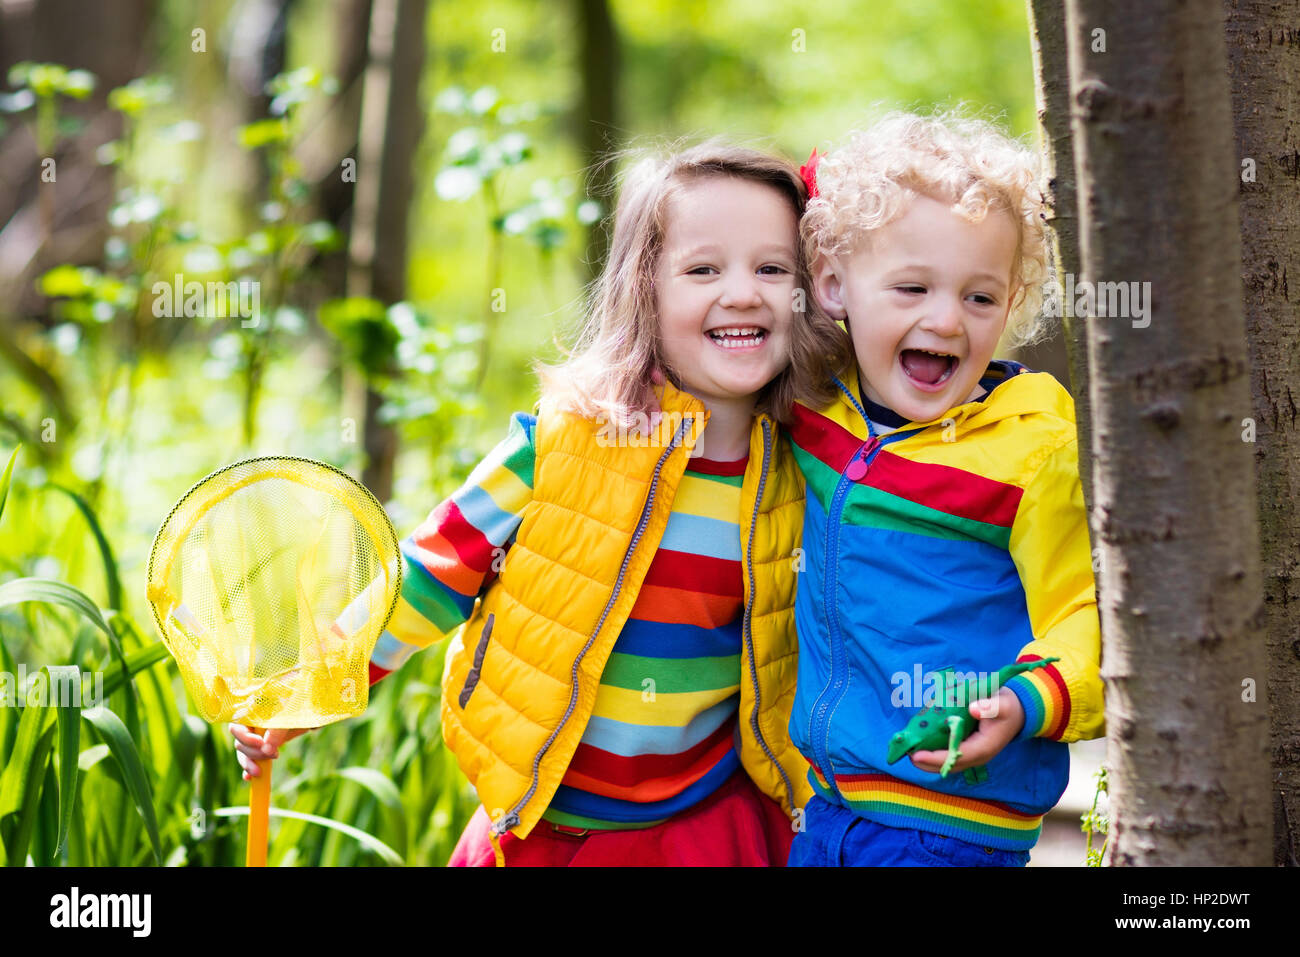 Children playing outdoors. Preschool kids catching frog with net. Boy and girl fishing in forest river. Adventure - Stock Image